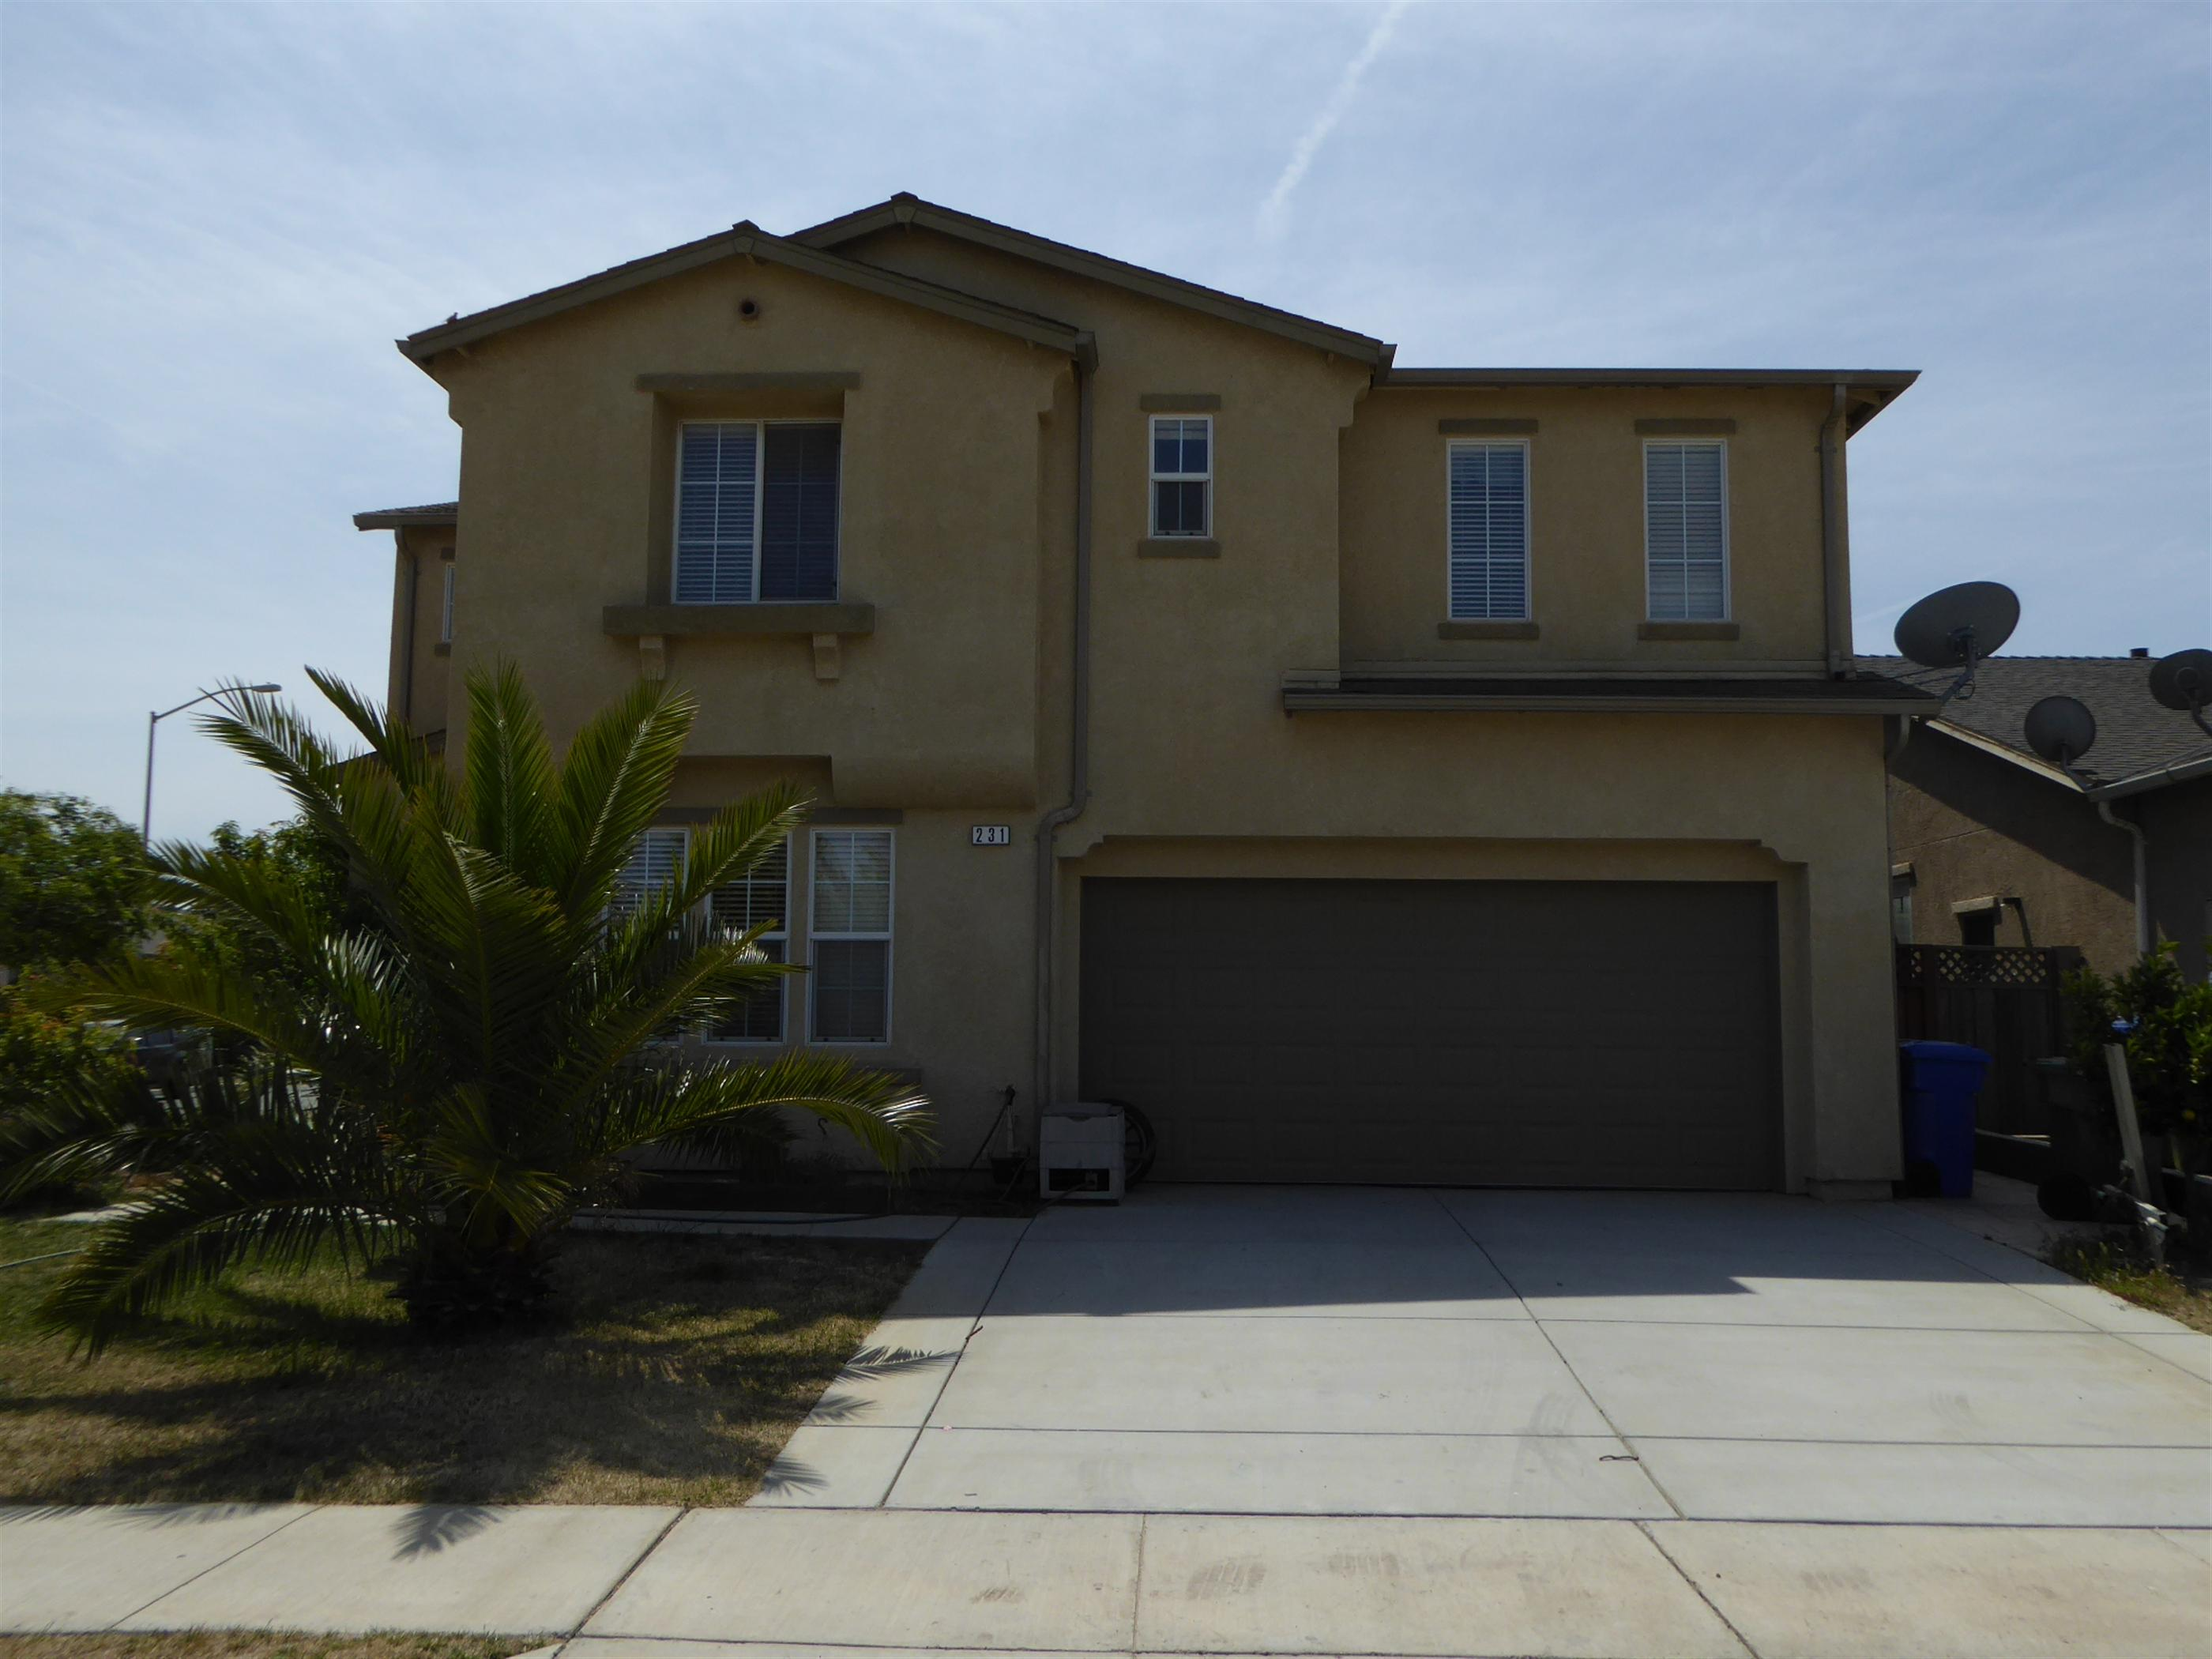 231 Bianco Way, Greenfield, CA 93927